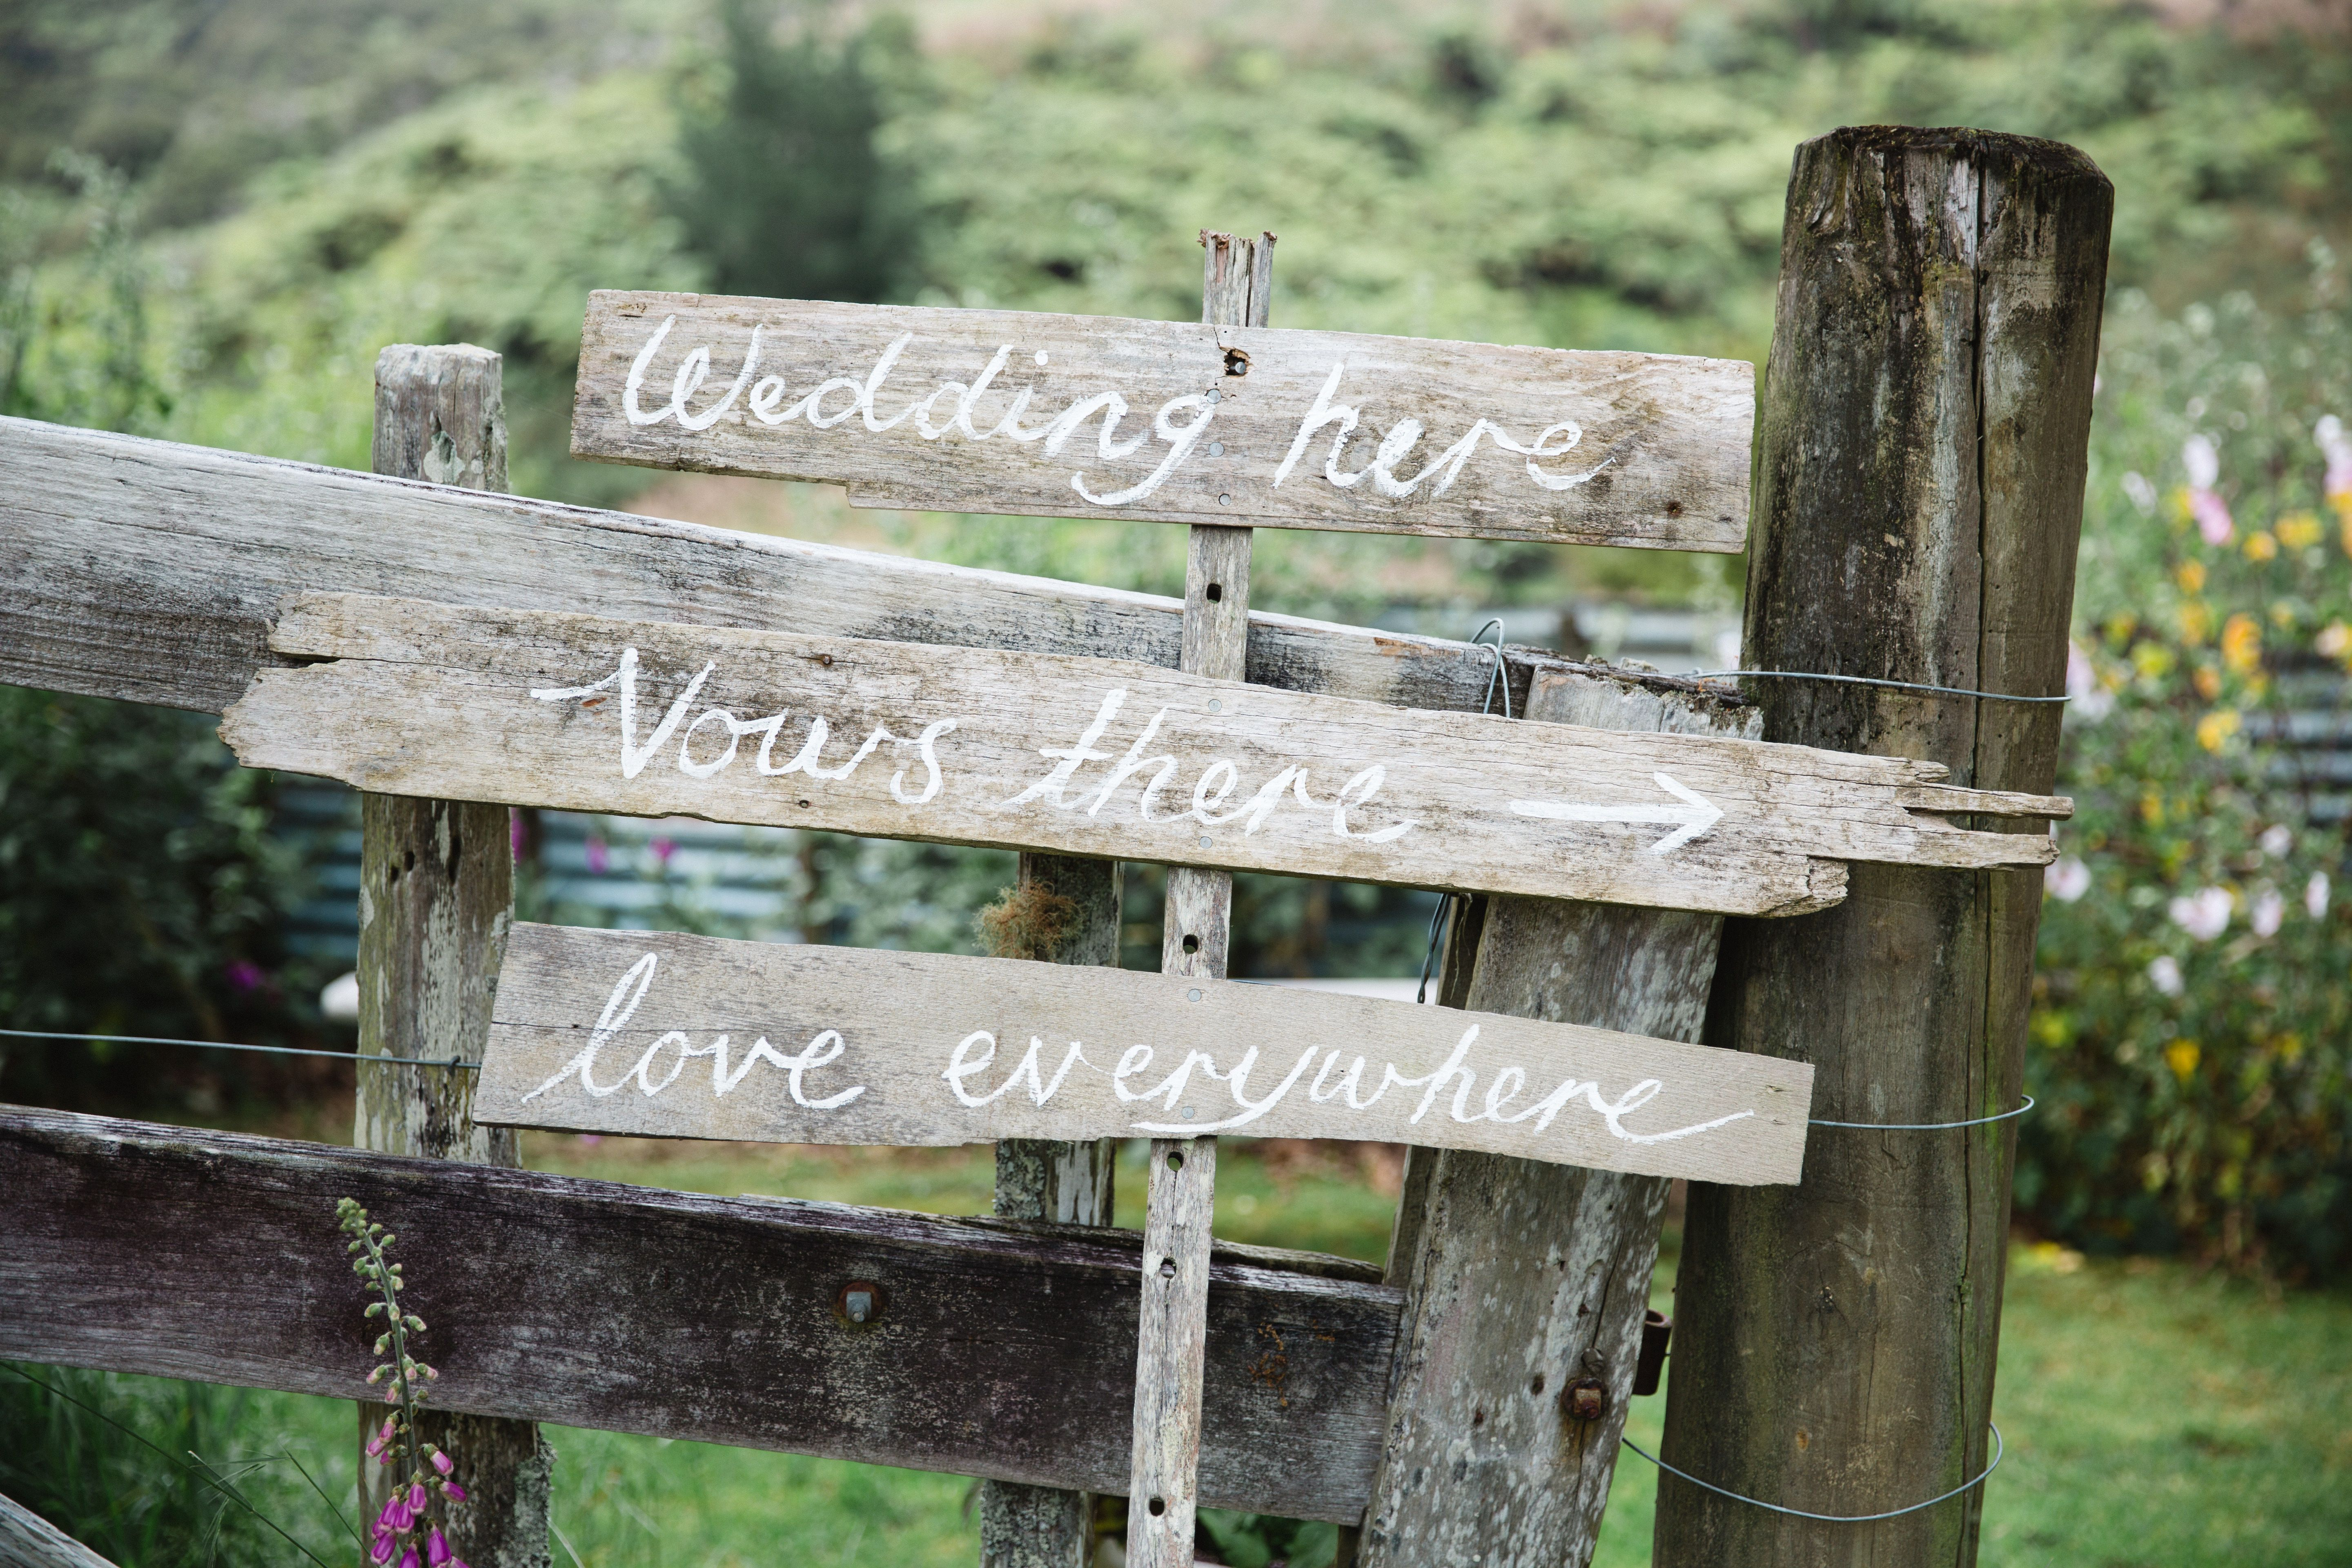 Boutique Barn, Rustic Barn, Rustic Wedding, Sweet Events Photography, Auckland Wedding, Country Wedding, Spring Wedding, Wedding, New Zealand Wedding, Puhoi, Wildflowers, , Wedding Photography, Wedding Photographer, Auckland Wedding Photographer, Emma Keirle